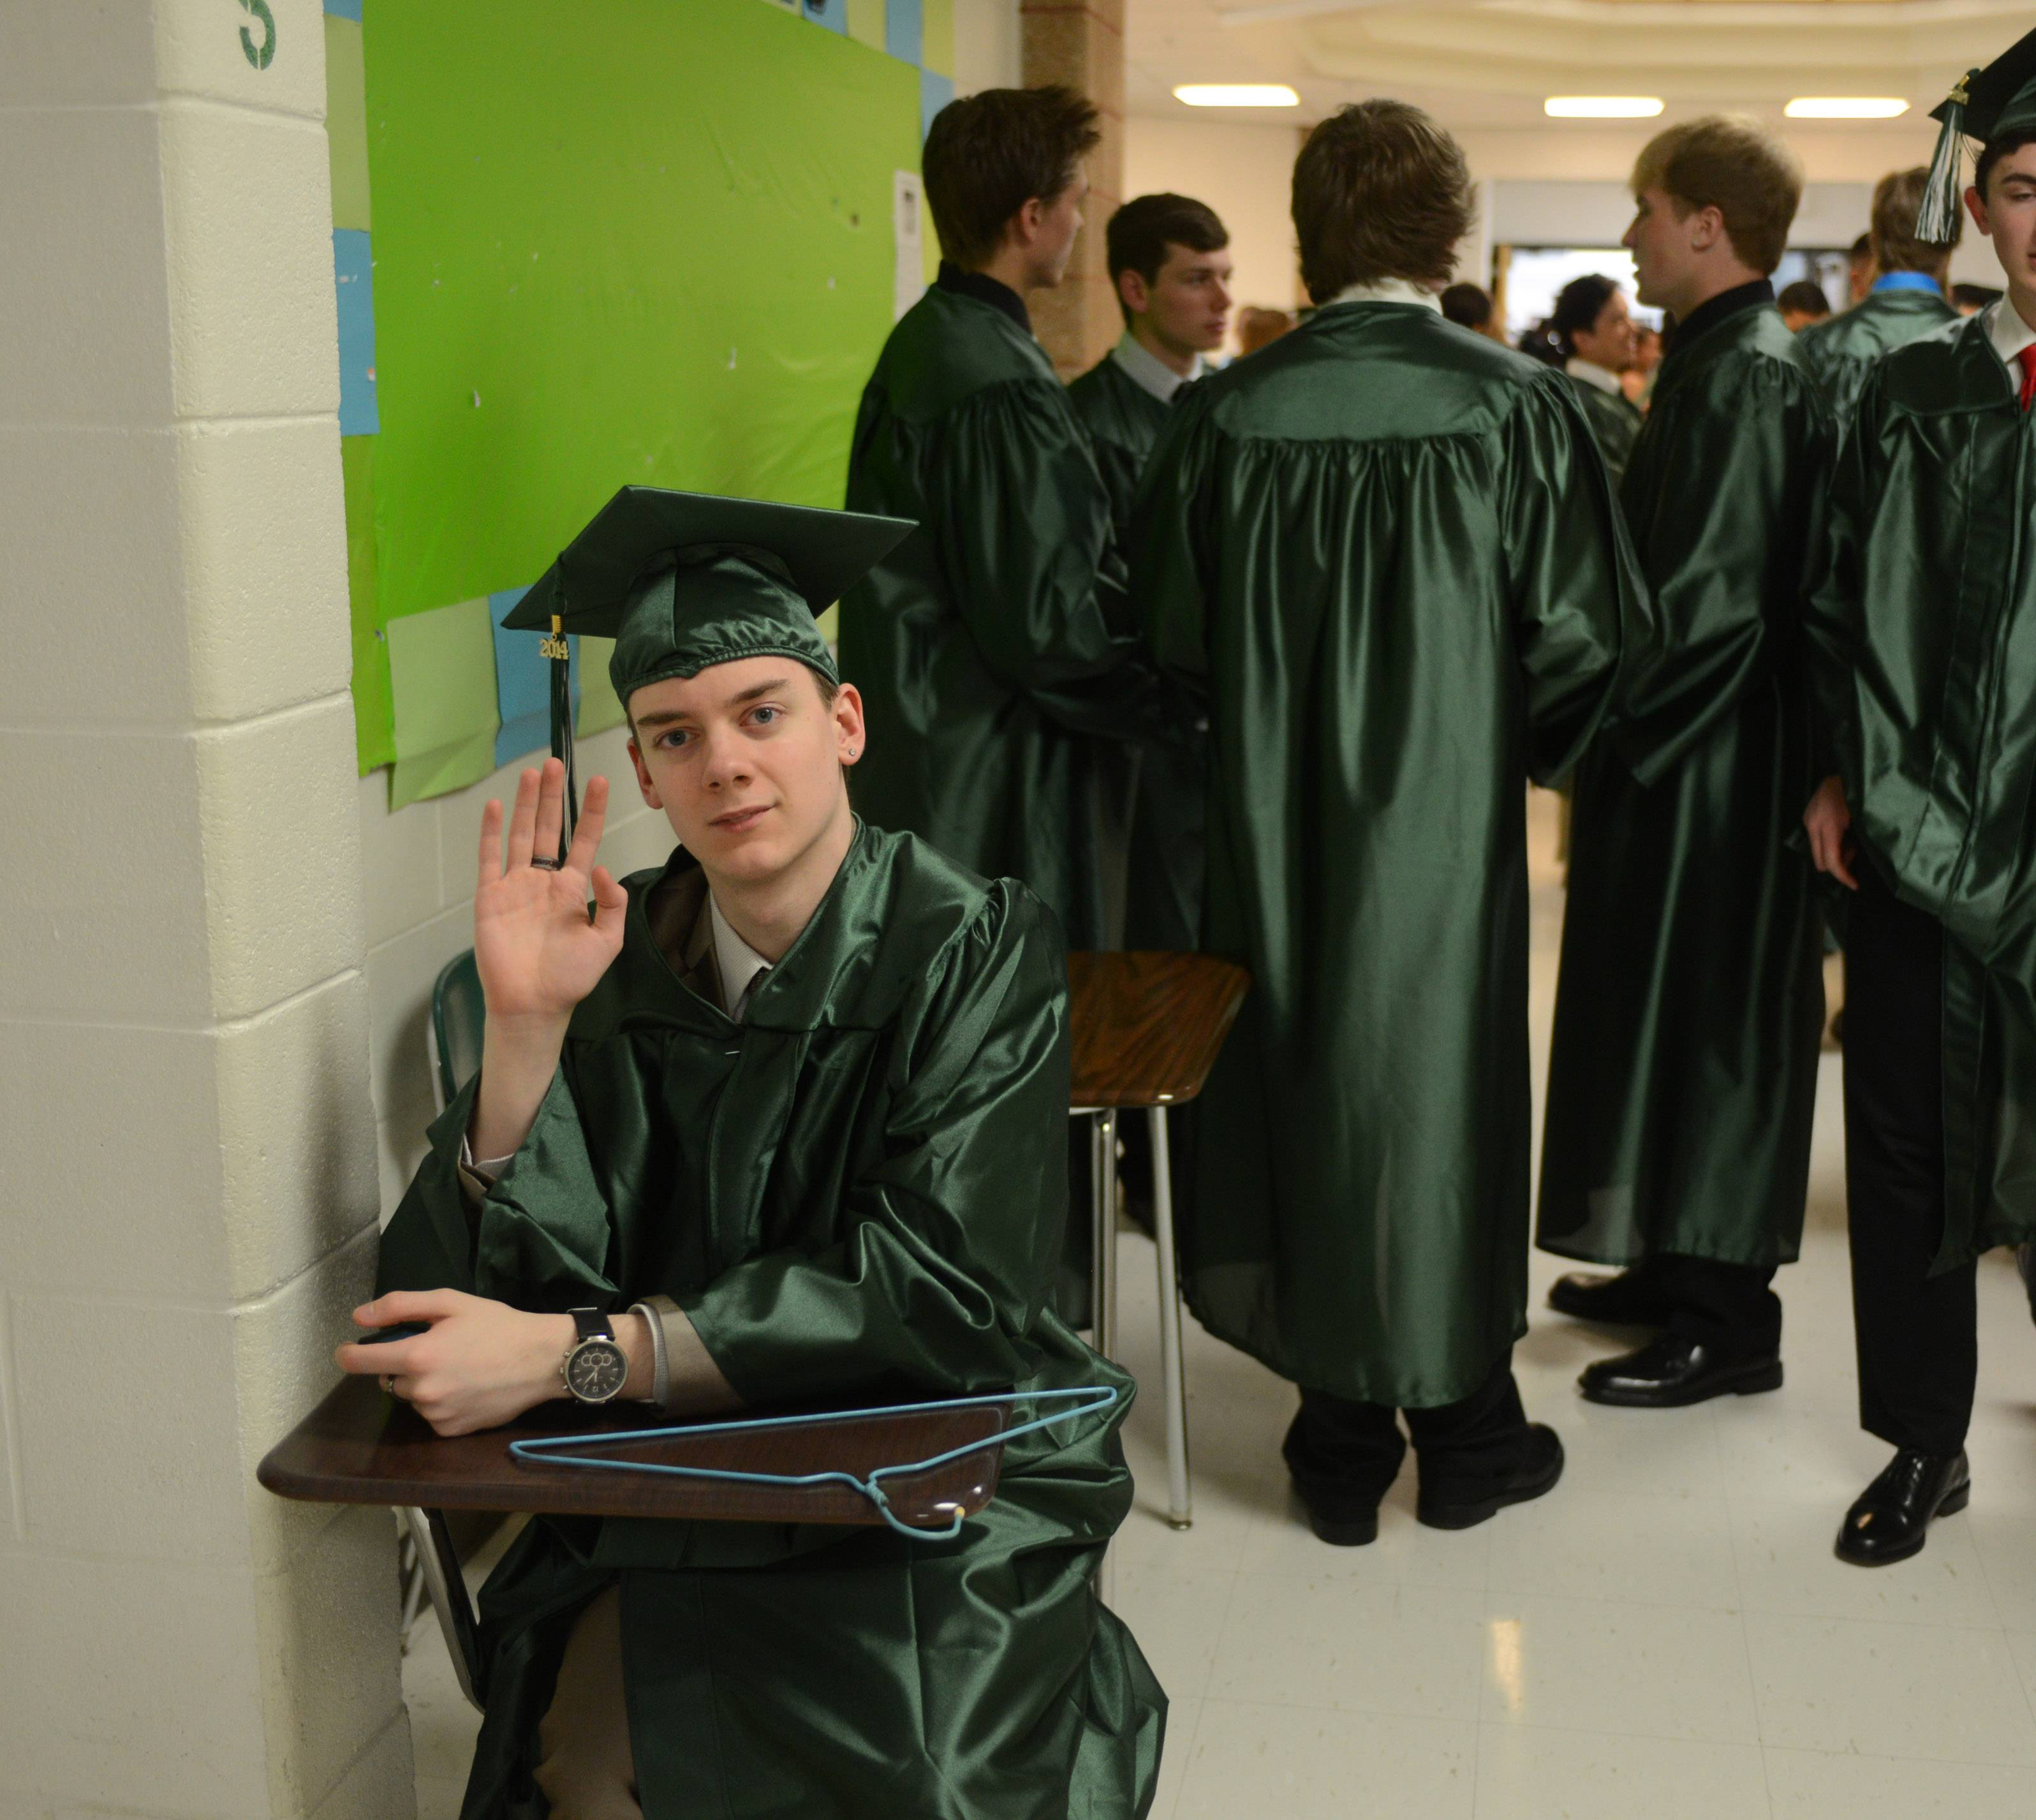 Images from the Grayslake Central High School graduation on Sunday, May 18 in Grayslake.